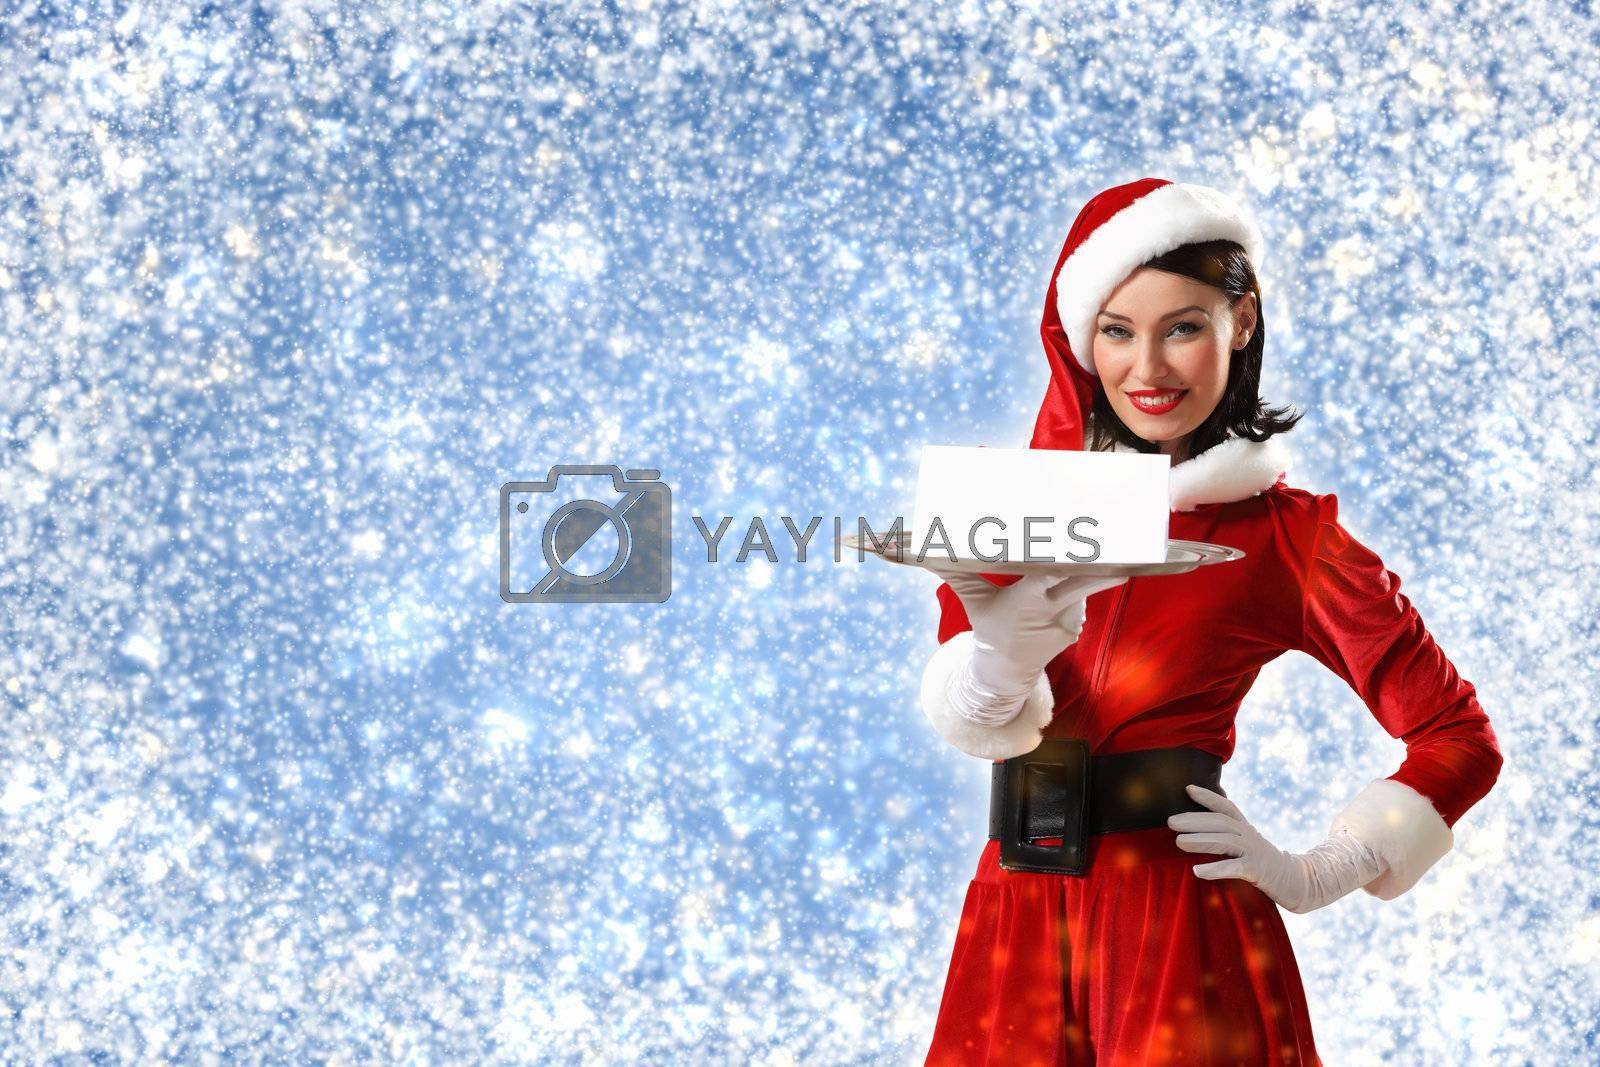 santa girl with a blank banner by Sergey Nivens